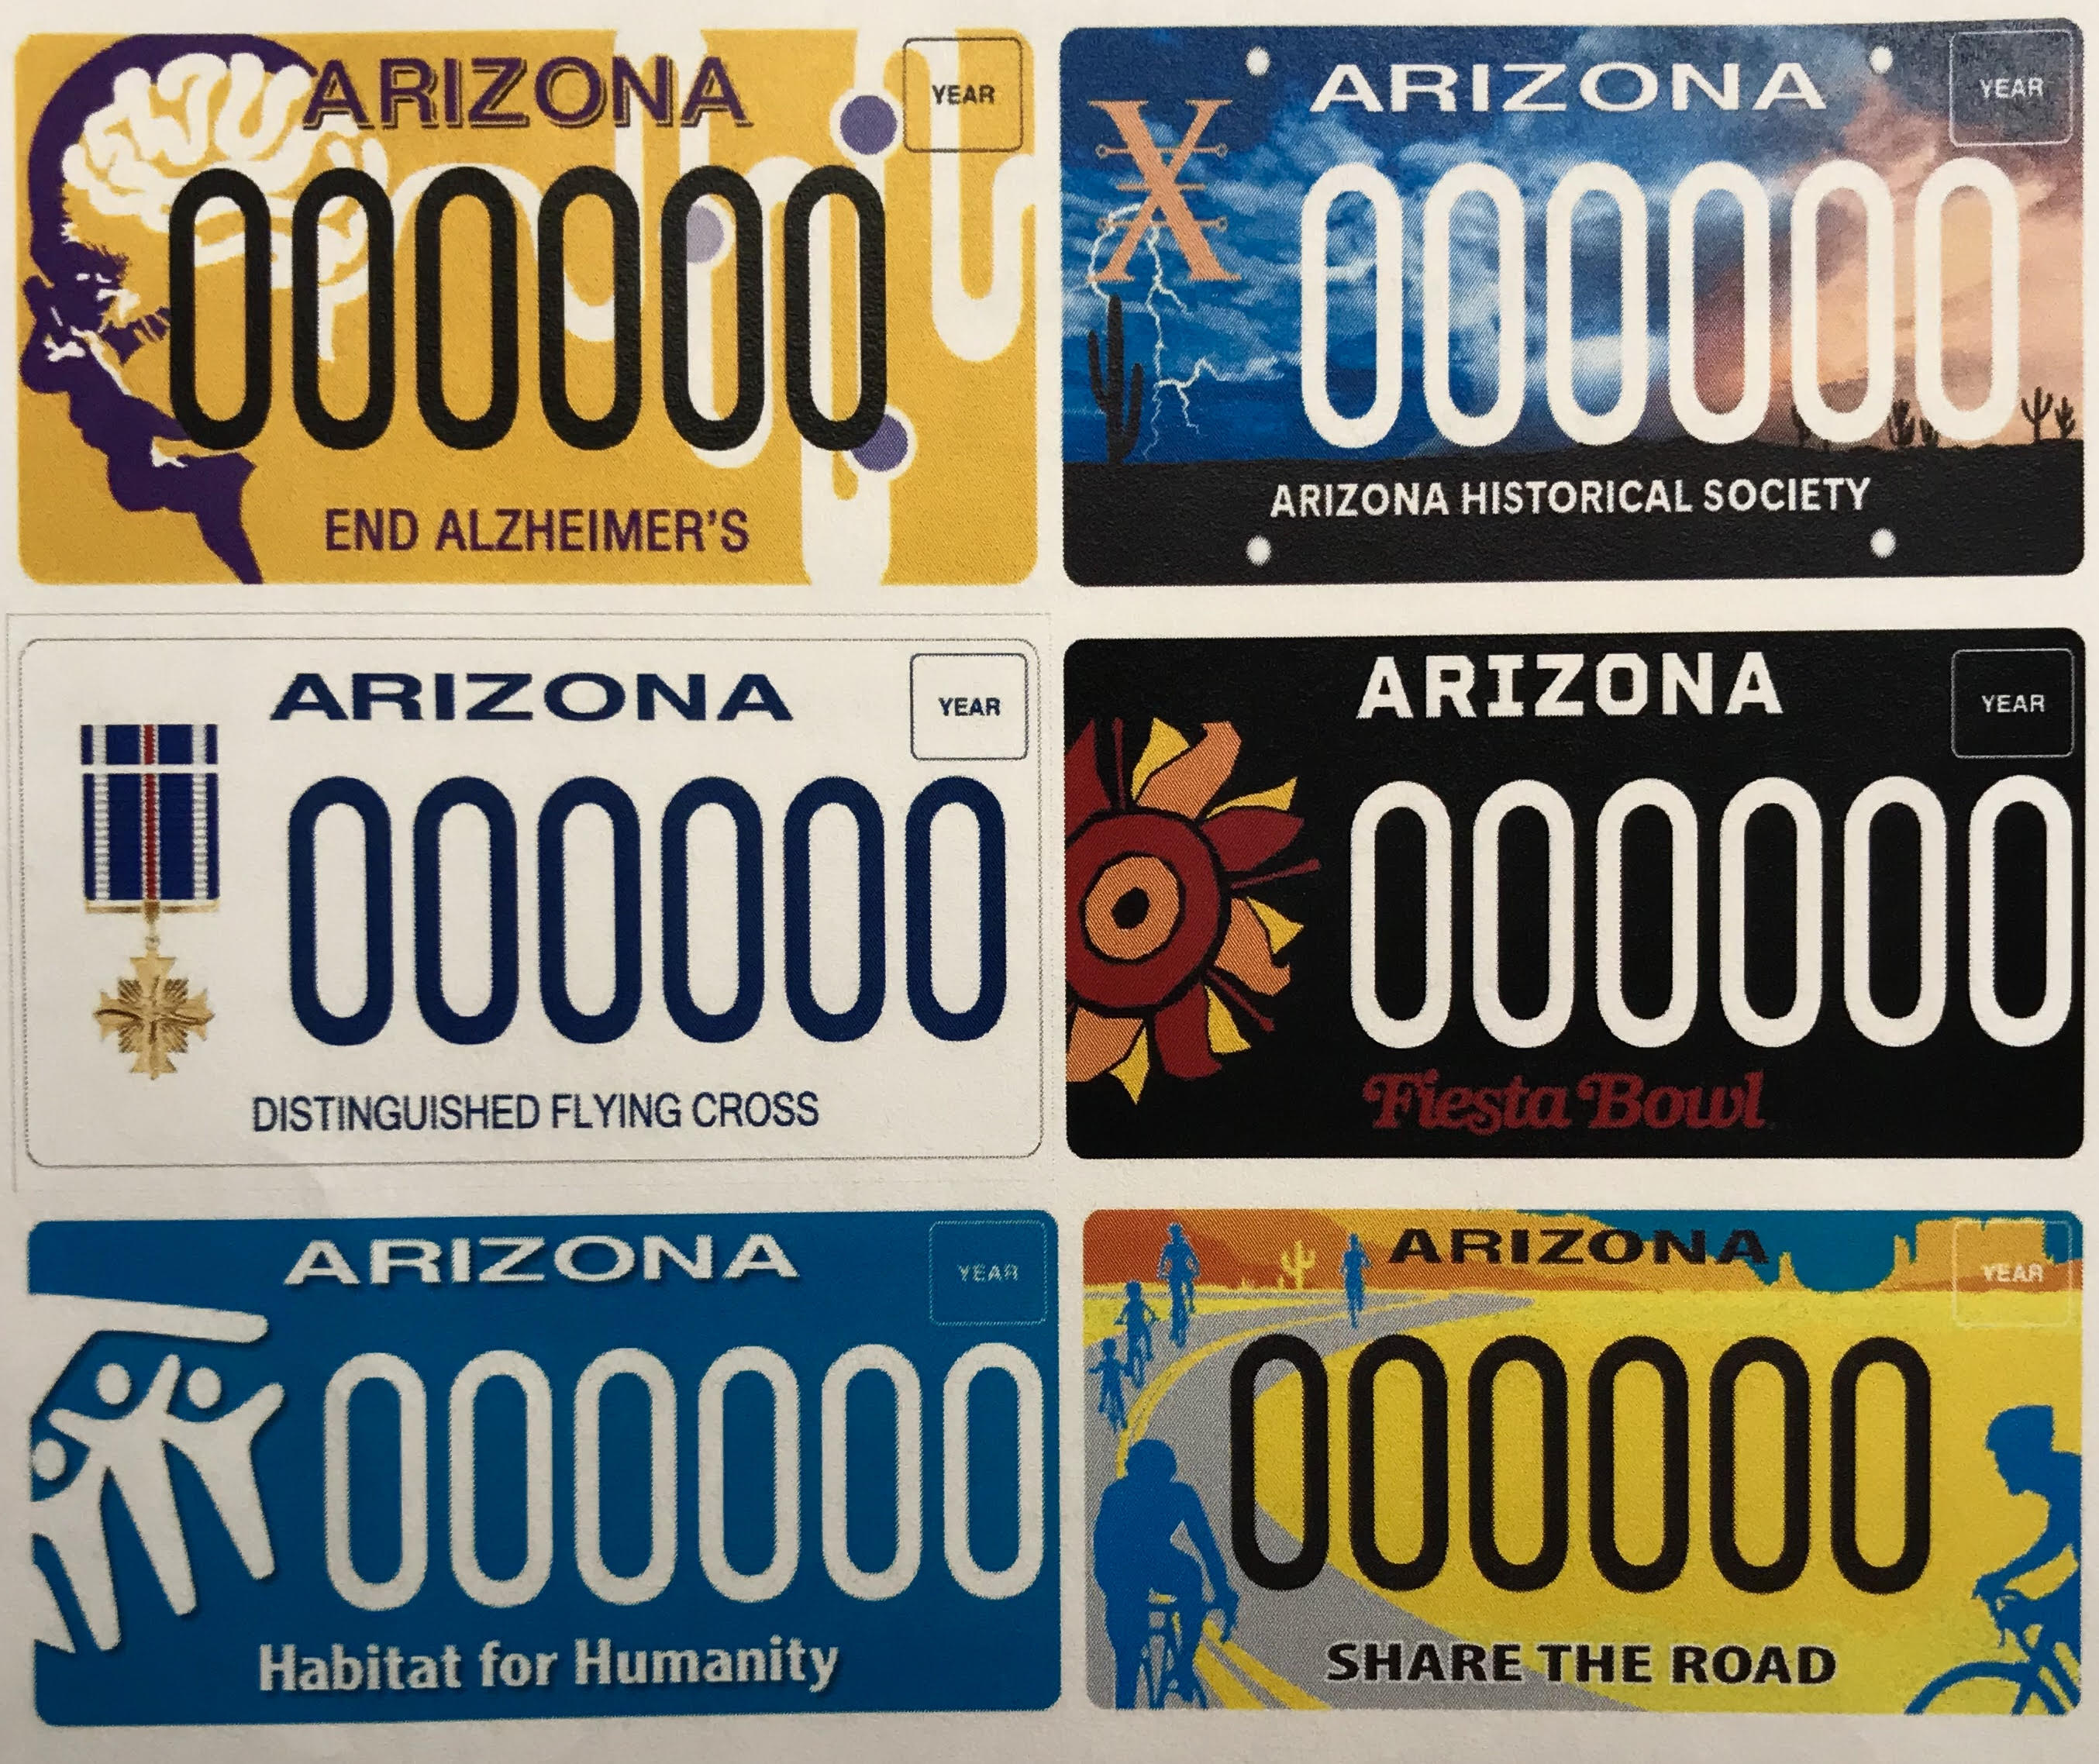 New specialty plates